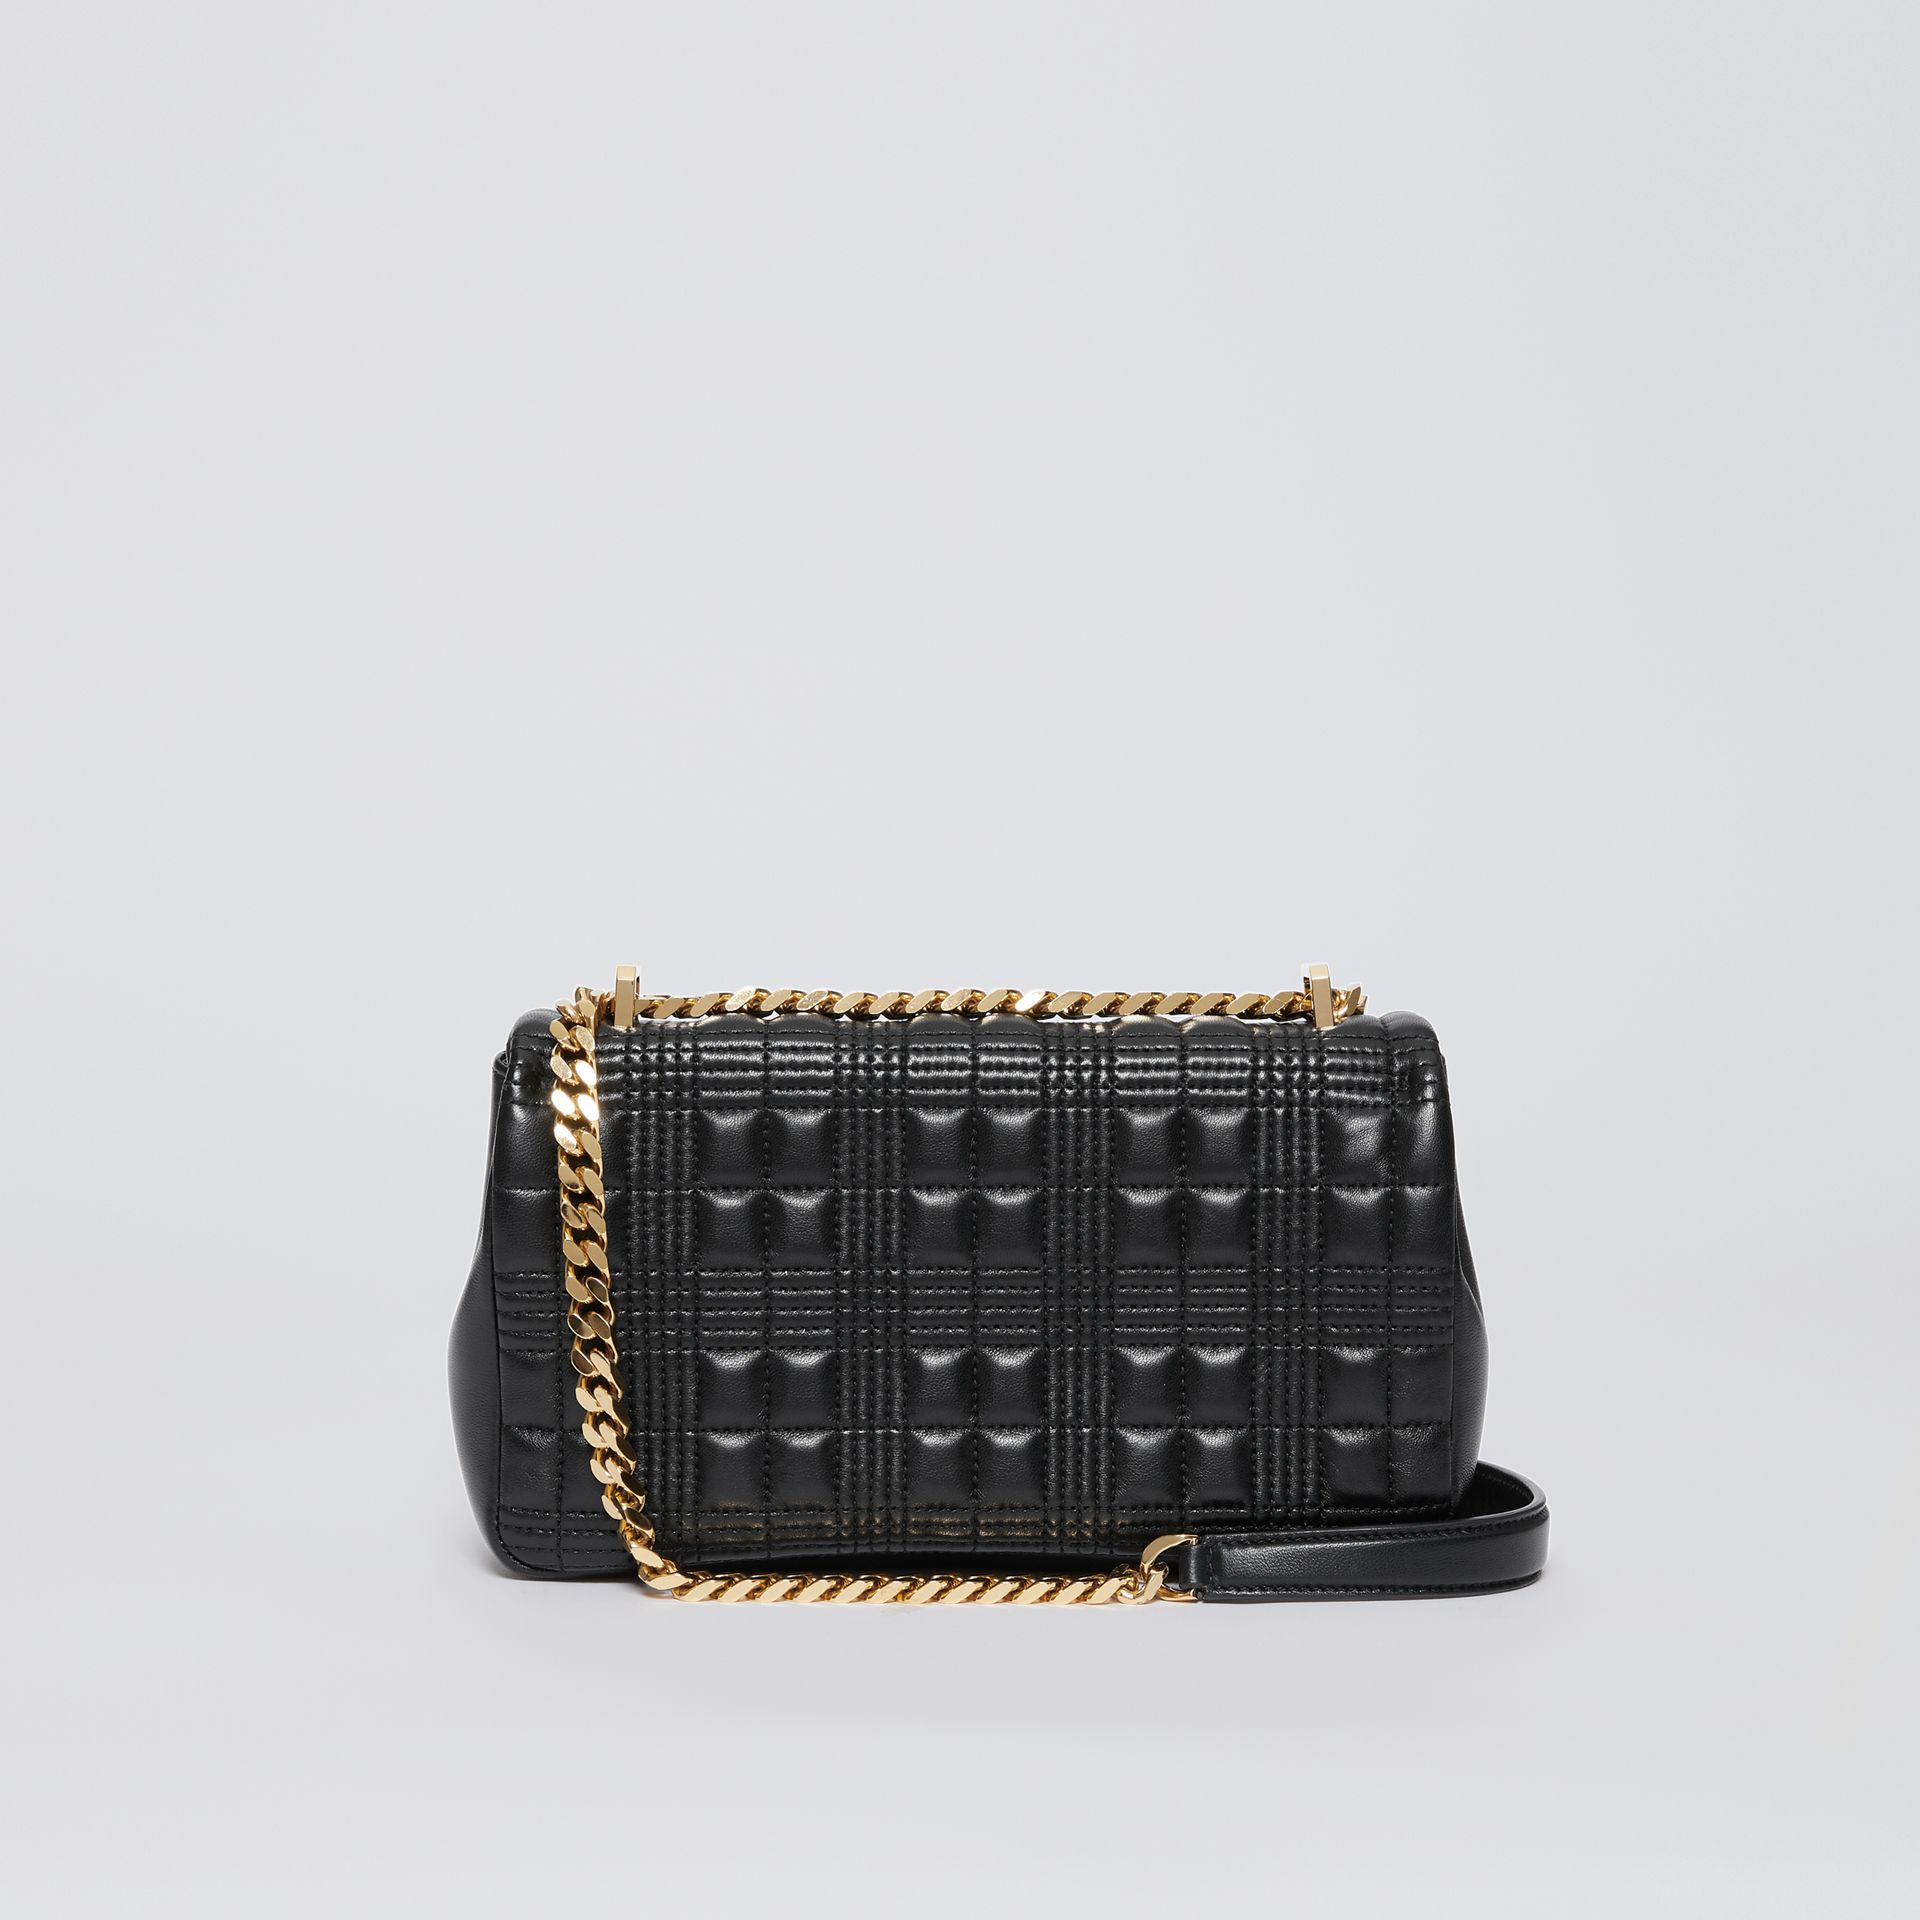 Small Quilted Lambskin Lola Bag in Black - Women | Burberry Singapore - gallery image 7